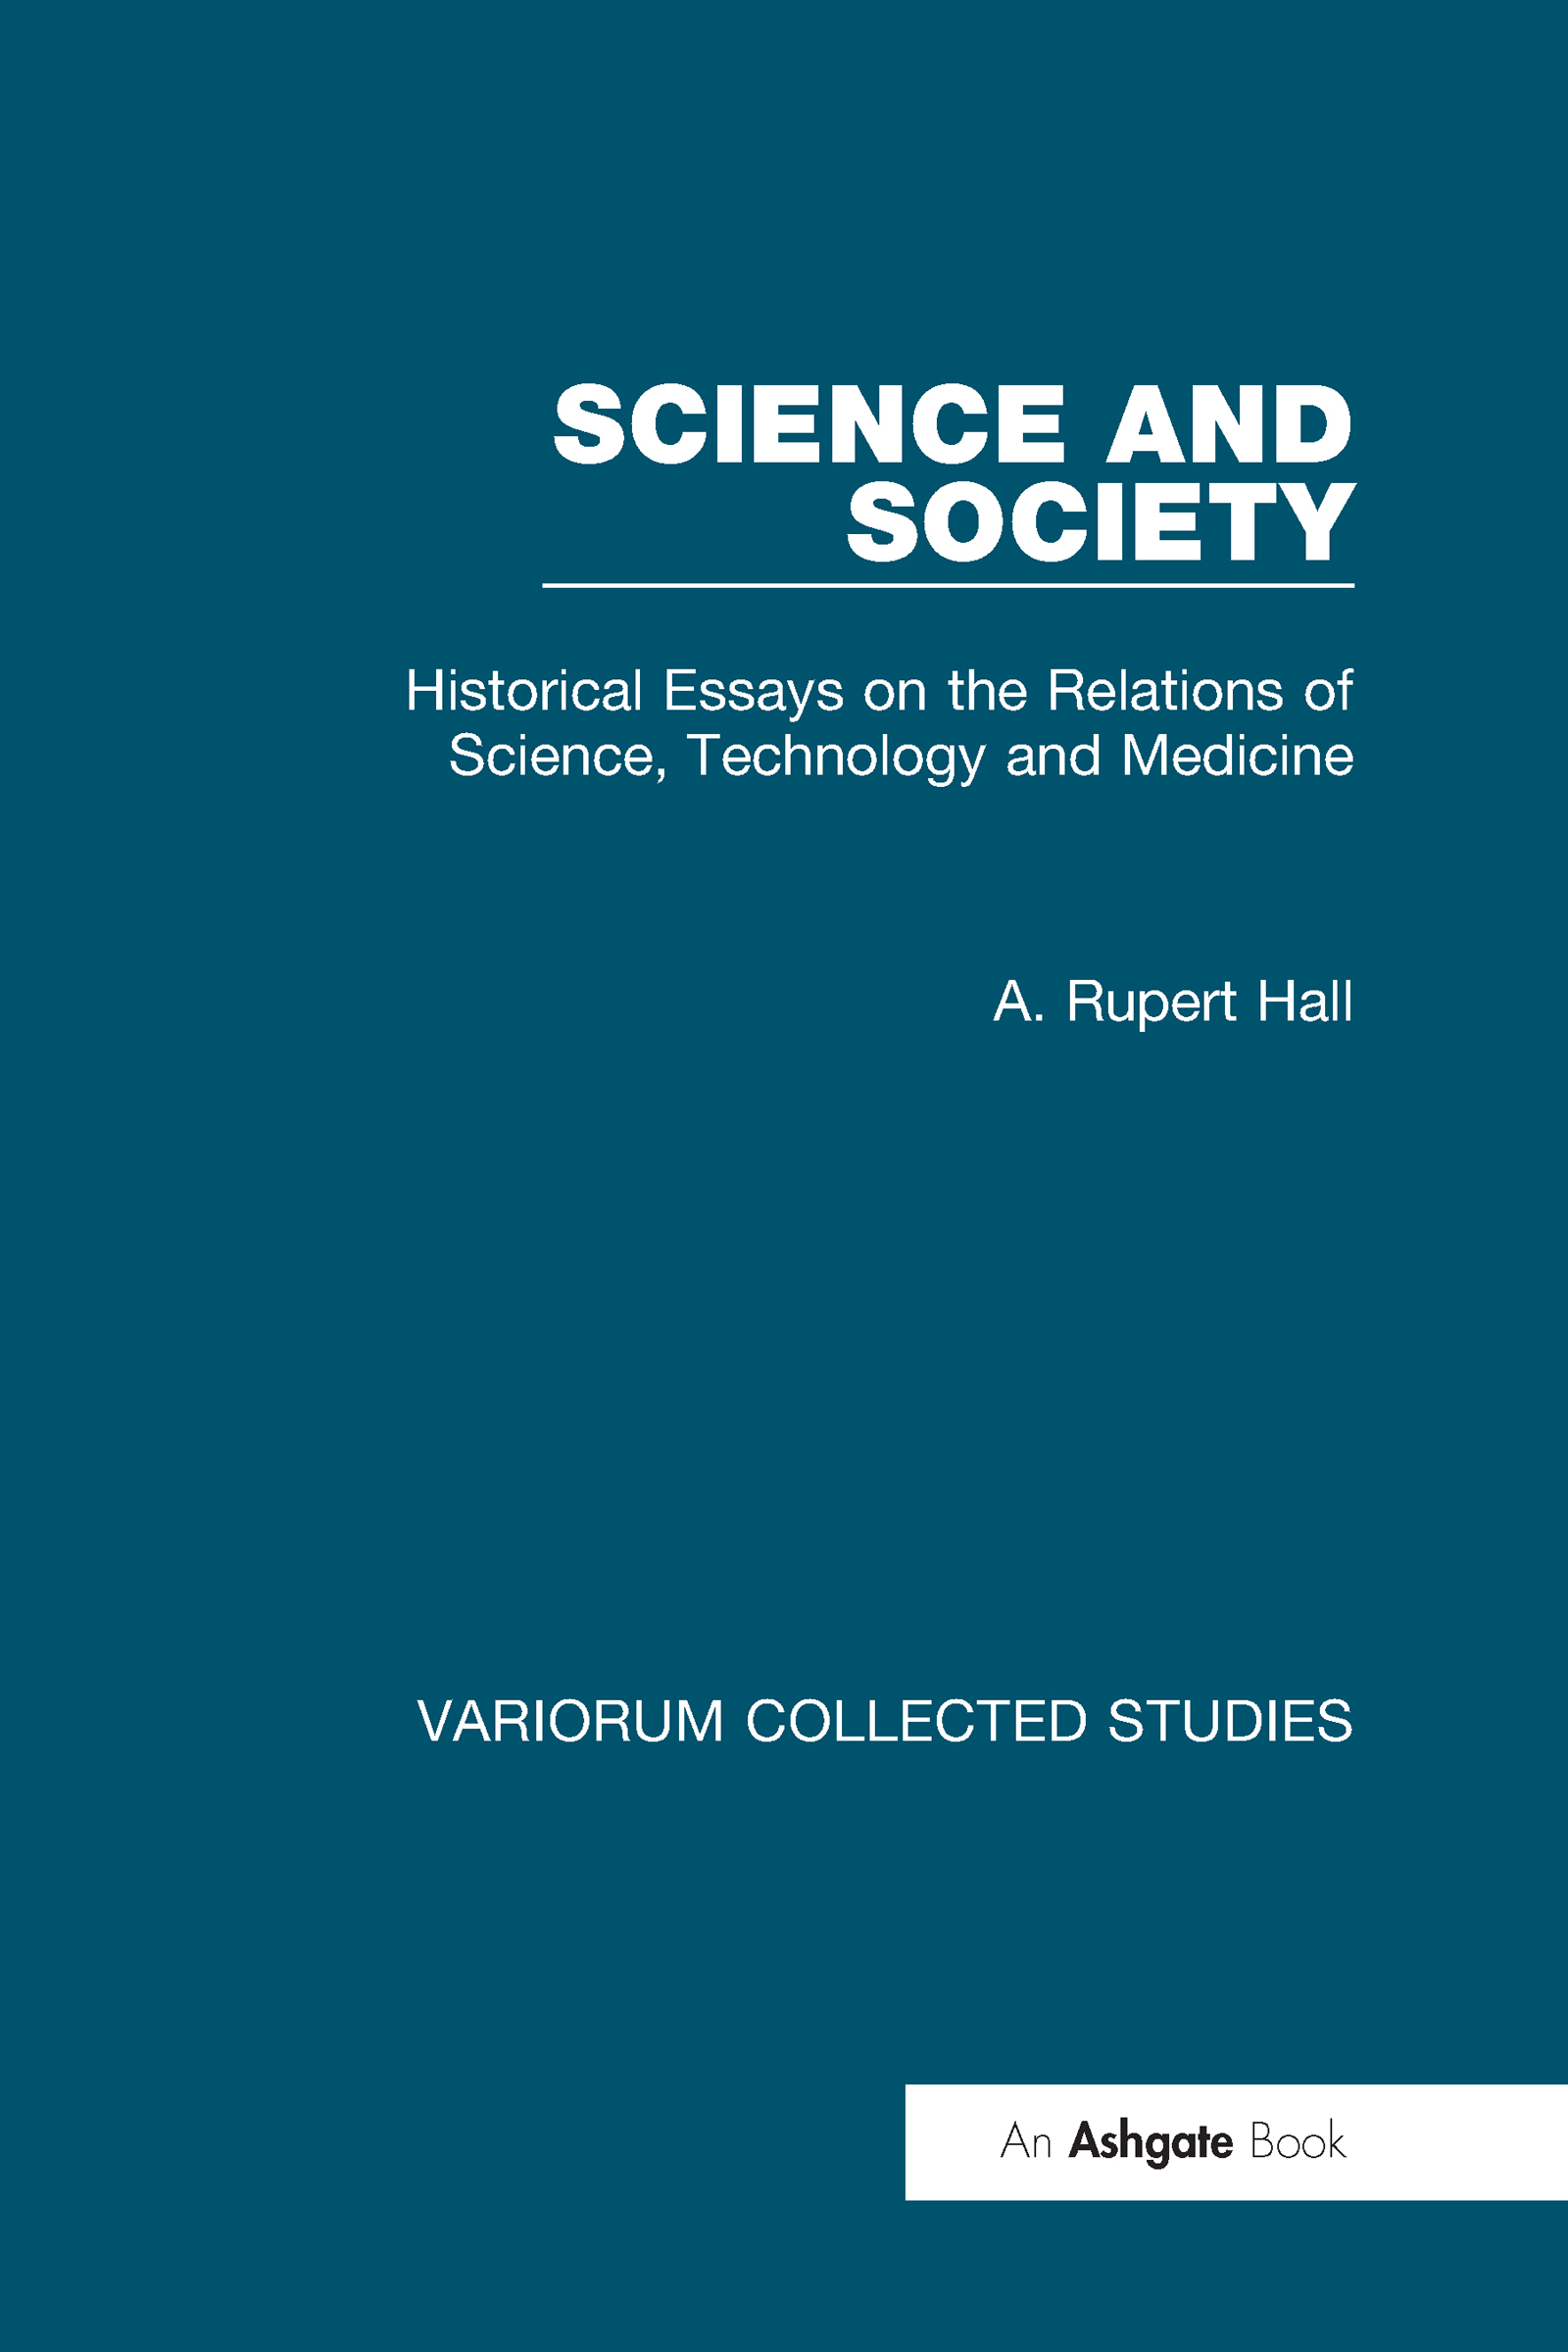 science and society historical essays on the relations of science  science and society historical essays on the relations of science  technology and medicine